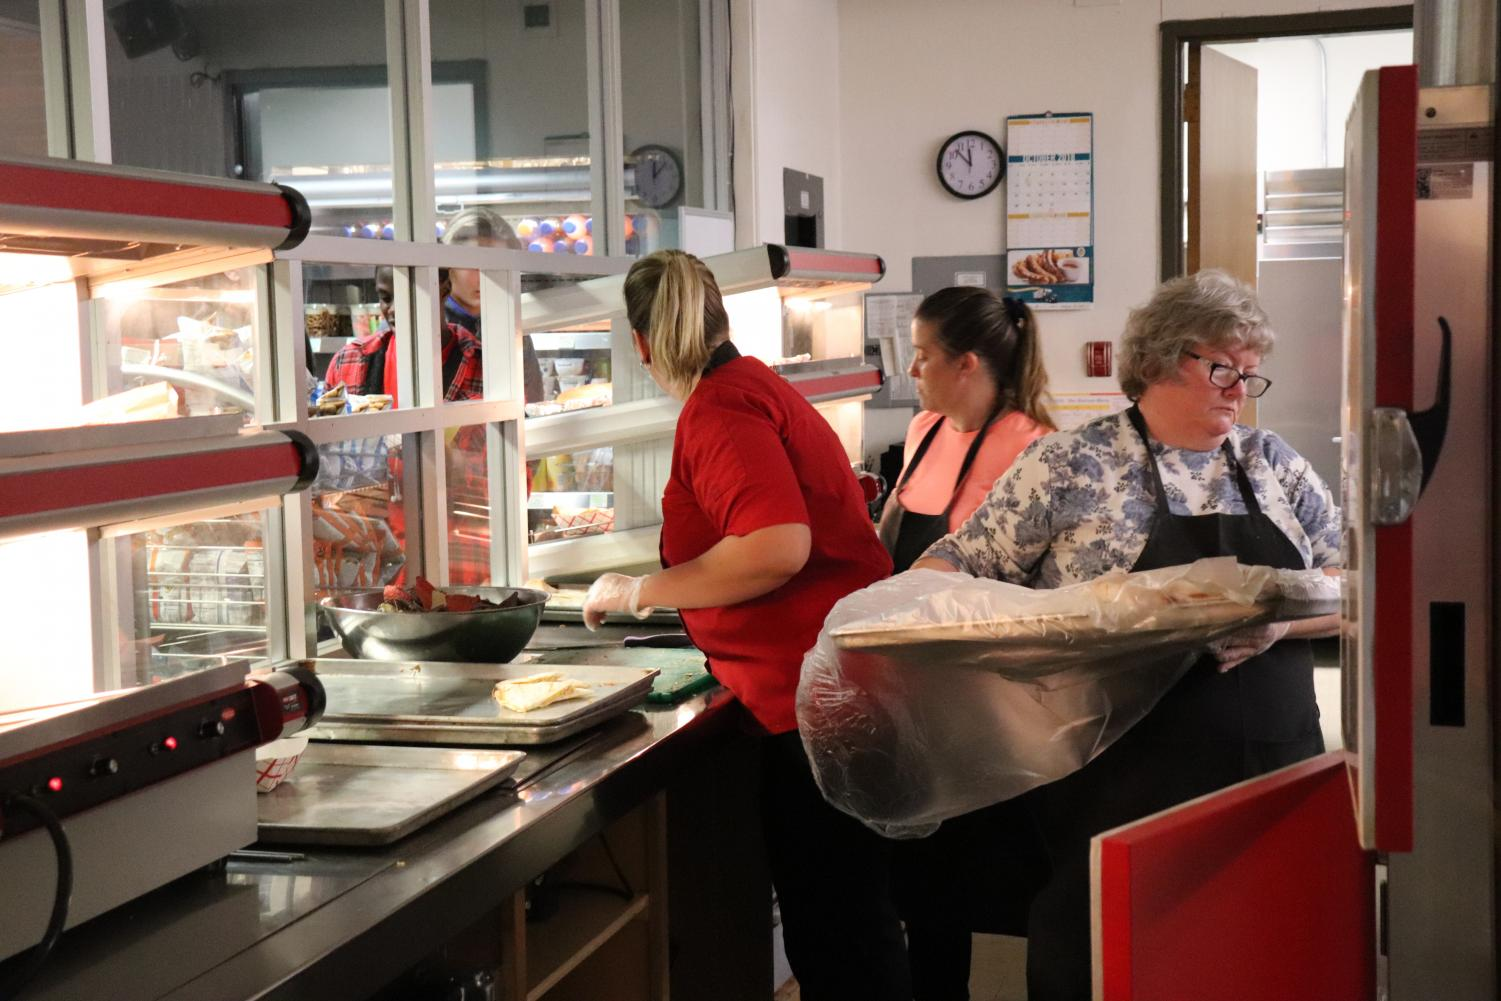 Ms. Gabel, Ms. McNassar, and volunteer Ms. Darnell Madrigal prepare and serve quesadillas to students.